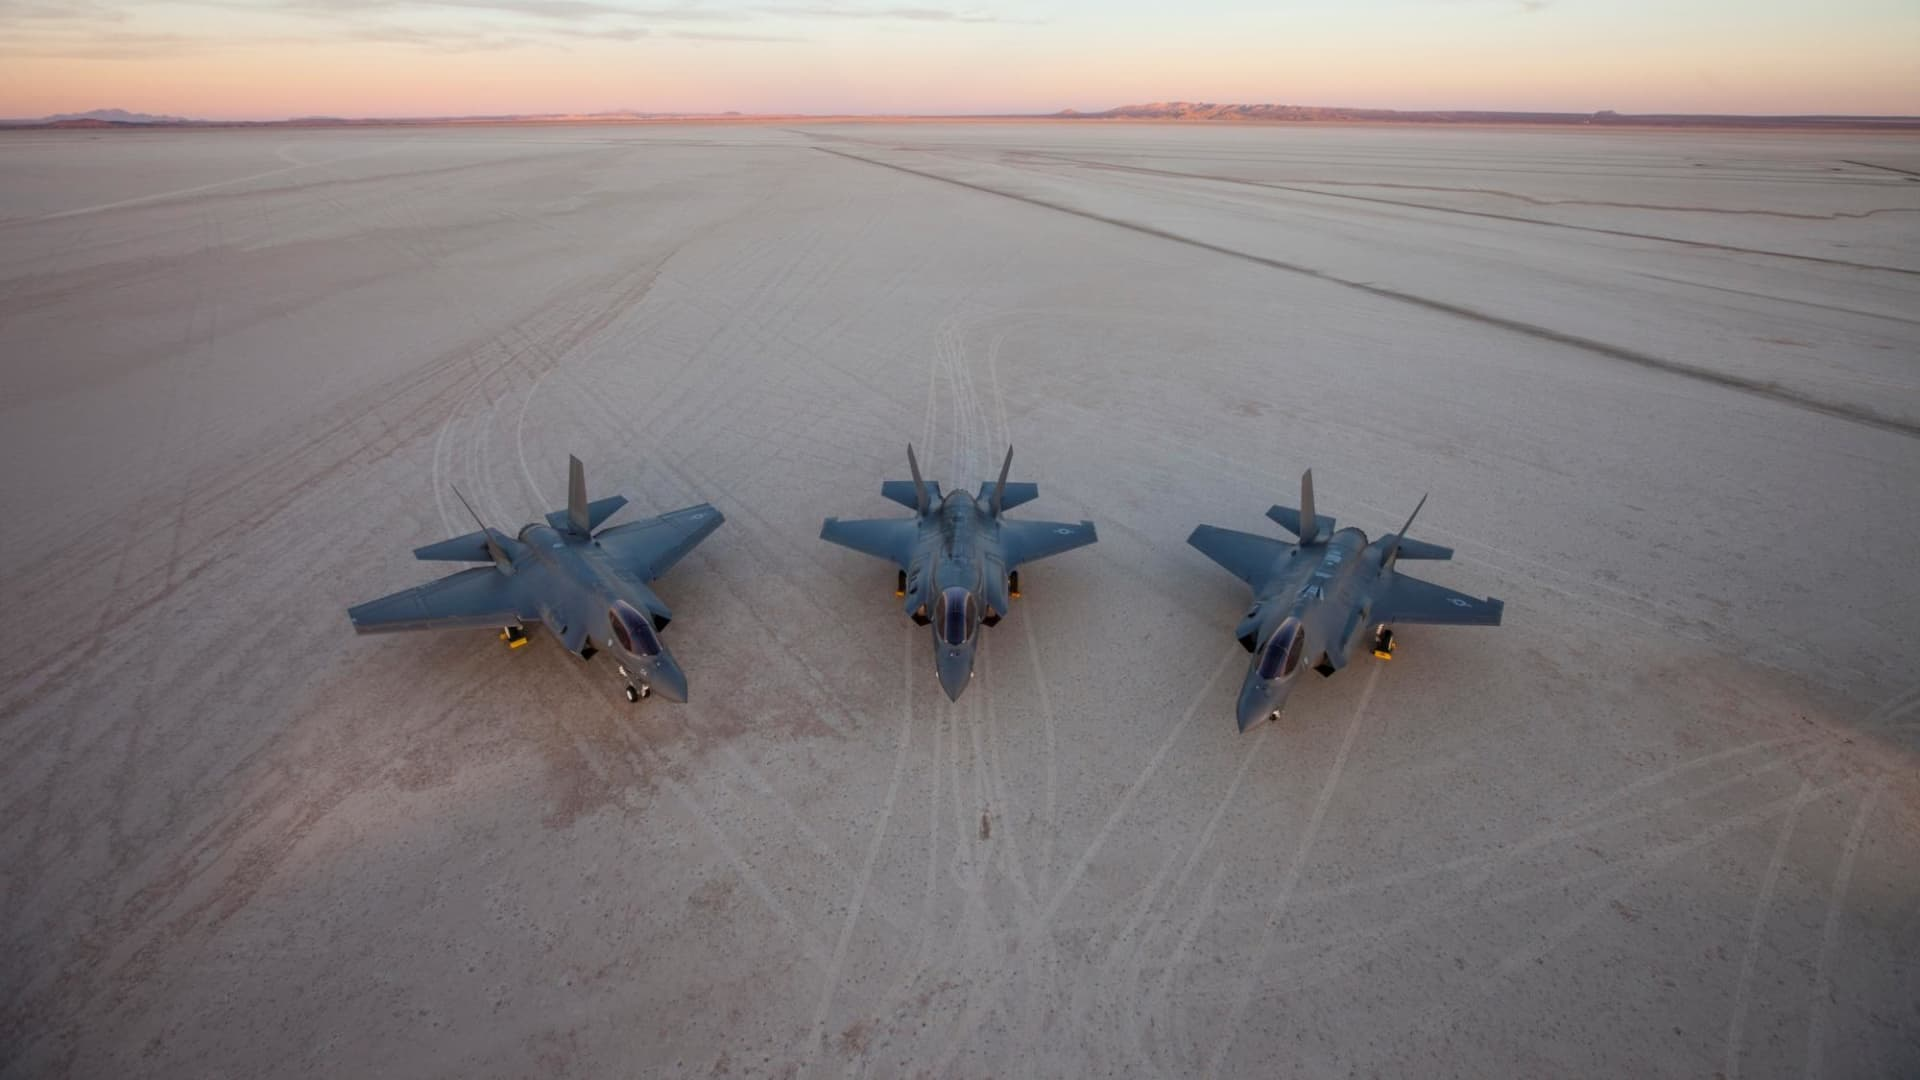 All three F-35 variants at Edwards Air Force Base, California: the Navy's F-35C, the Marine Corps' F-35B, and the Air Force's F-35A variant.